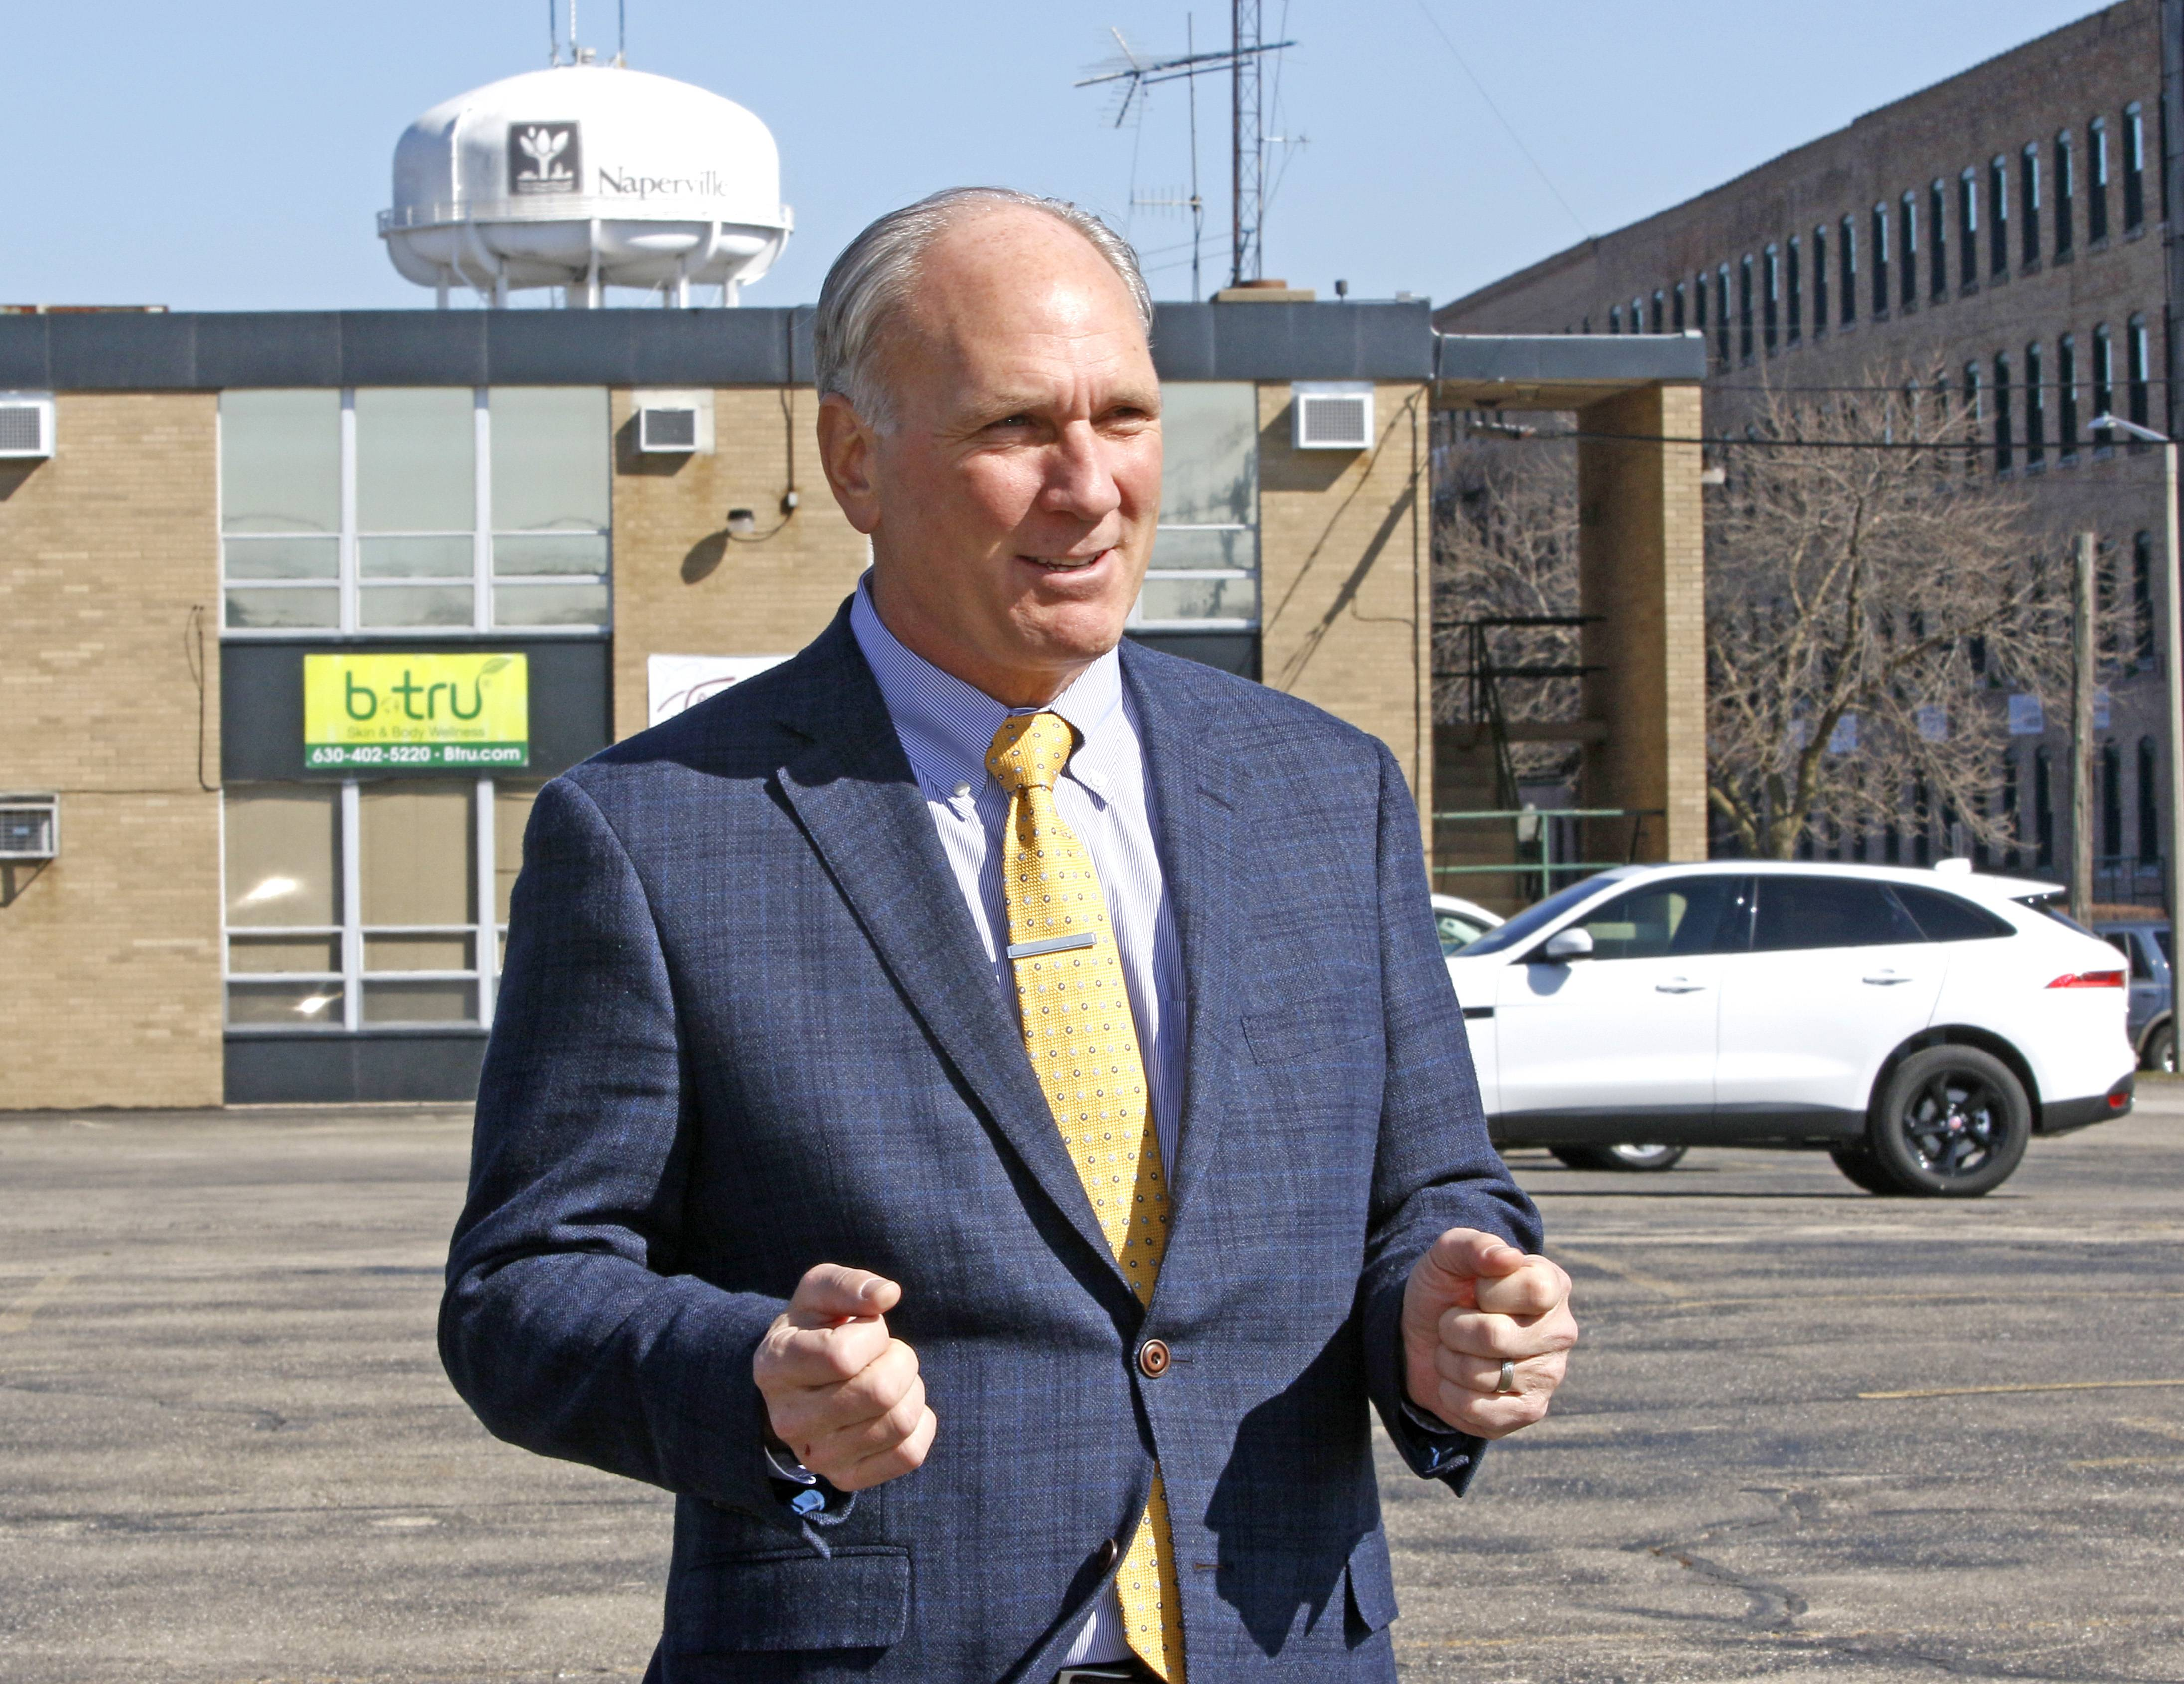 Naperville Mayor Steve Chirico says the city is seeking out-of-the-box ideas for eight acres of city-owned land around the 5th Avenue Metra station north of downtown, including the small business building and water tower site behind him.